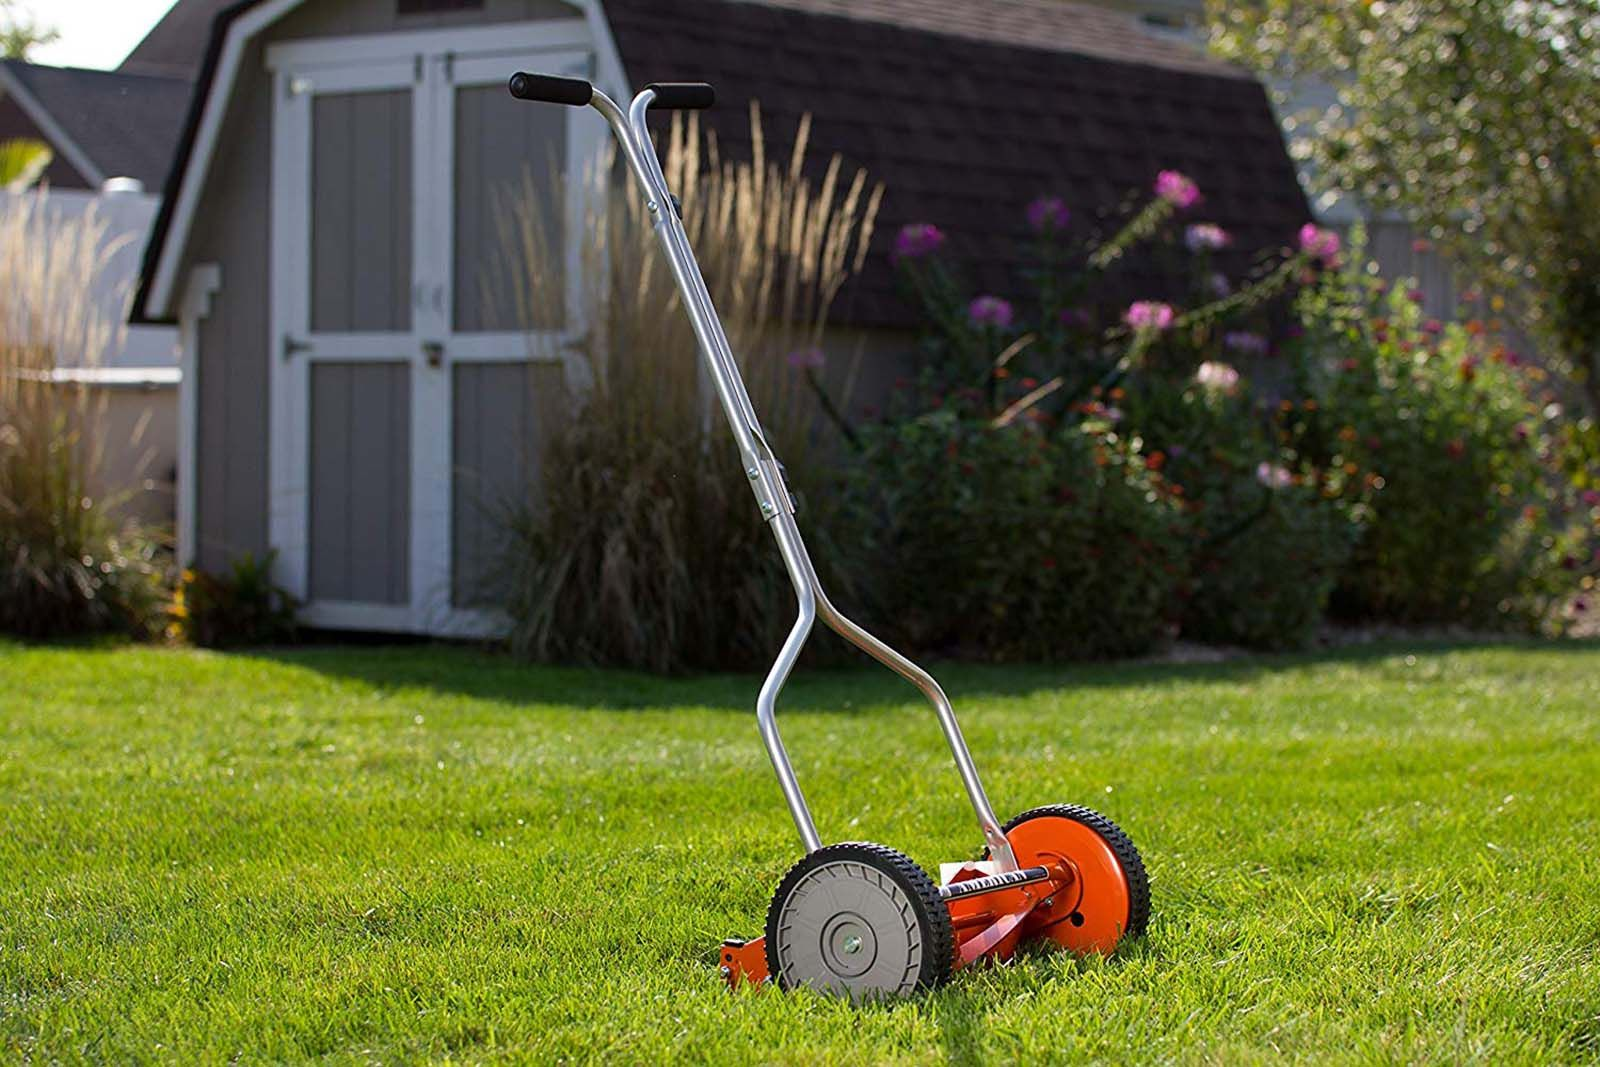 4 Best Lawn Mower For Small Yard In 2019 Experts Buyer Guide